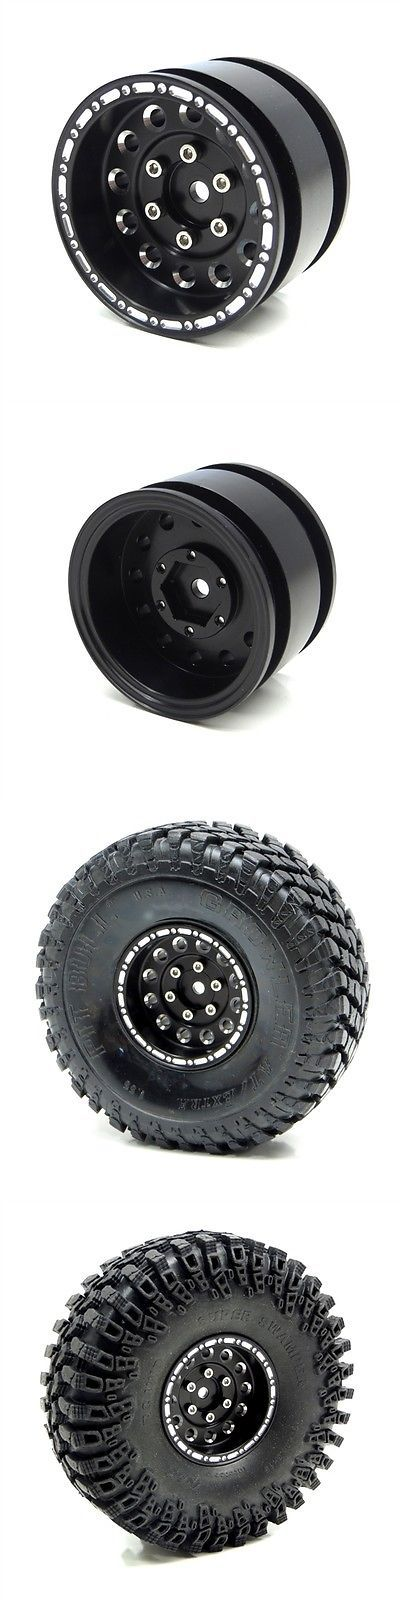 Wheels Tires Rims and Hubs 182201: Gear Head Rc 1.55 Krusher Blackout Wheels (4) Gea1003 -> BUY IT NOW ONLY: $59.99 on eBay!